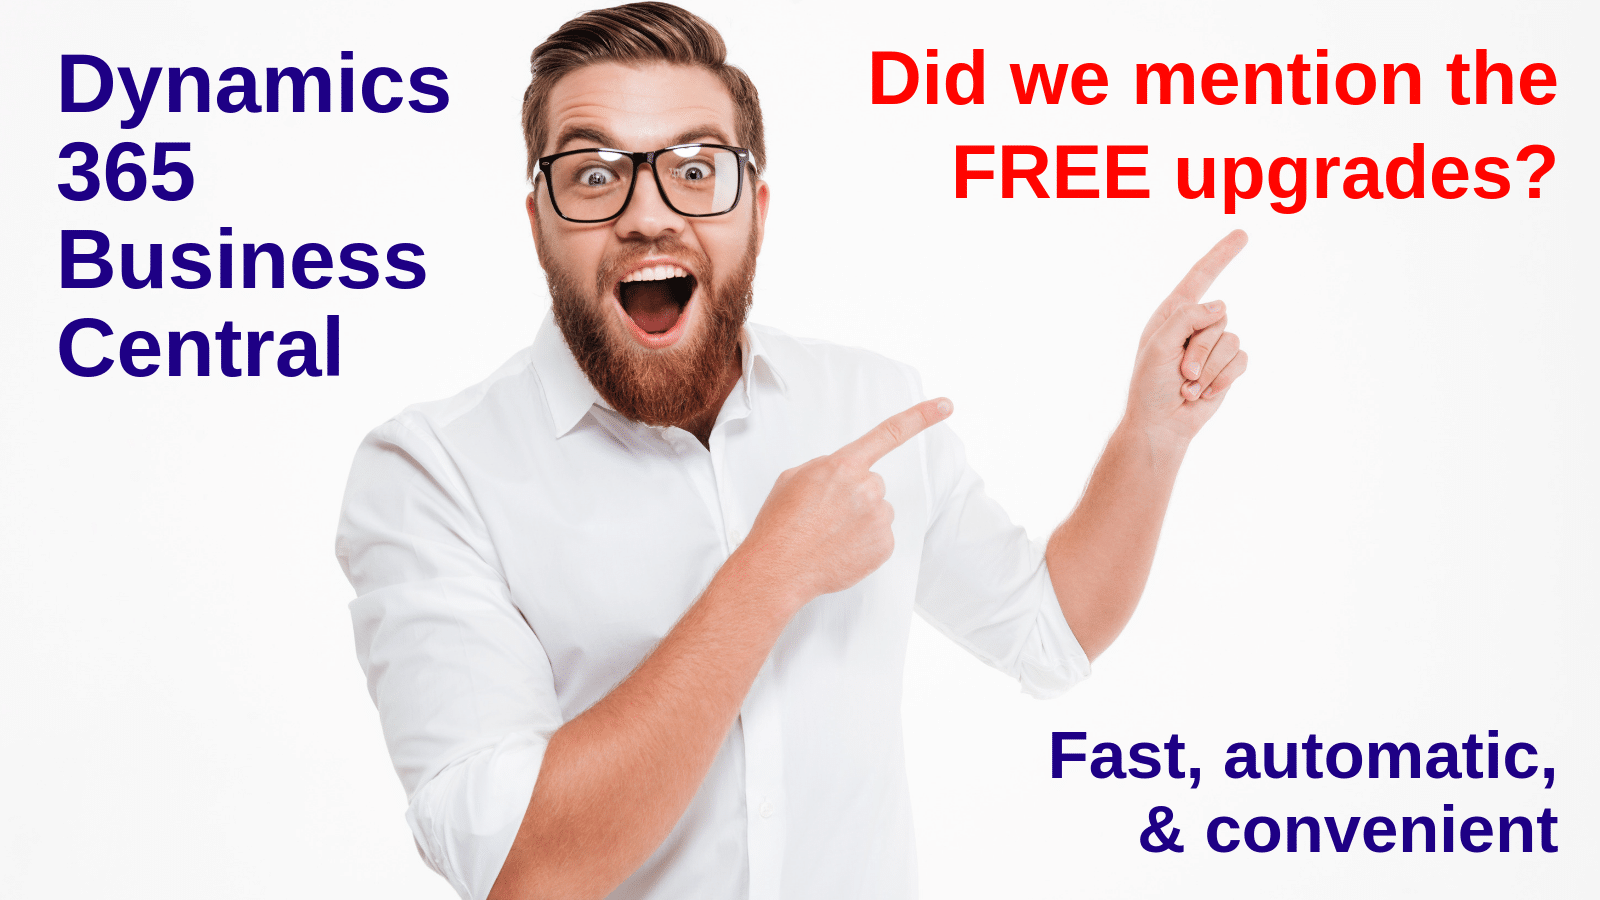 Are you ready for free upgrades that are fast, automatic, and convenient?